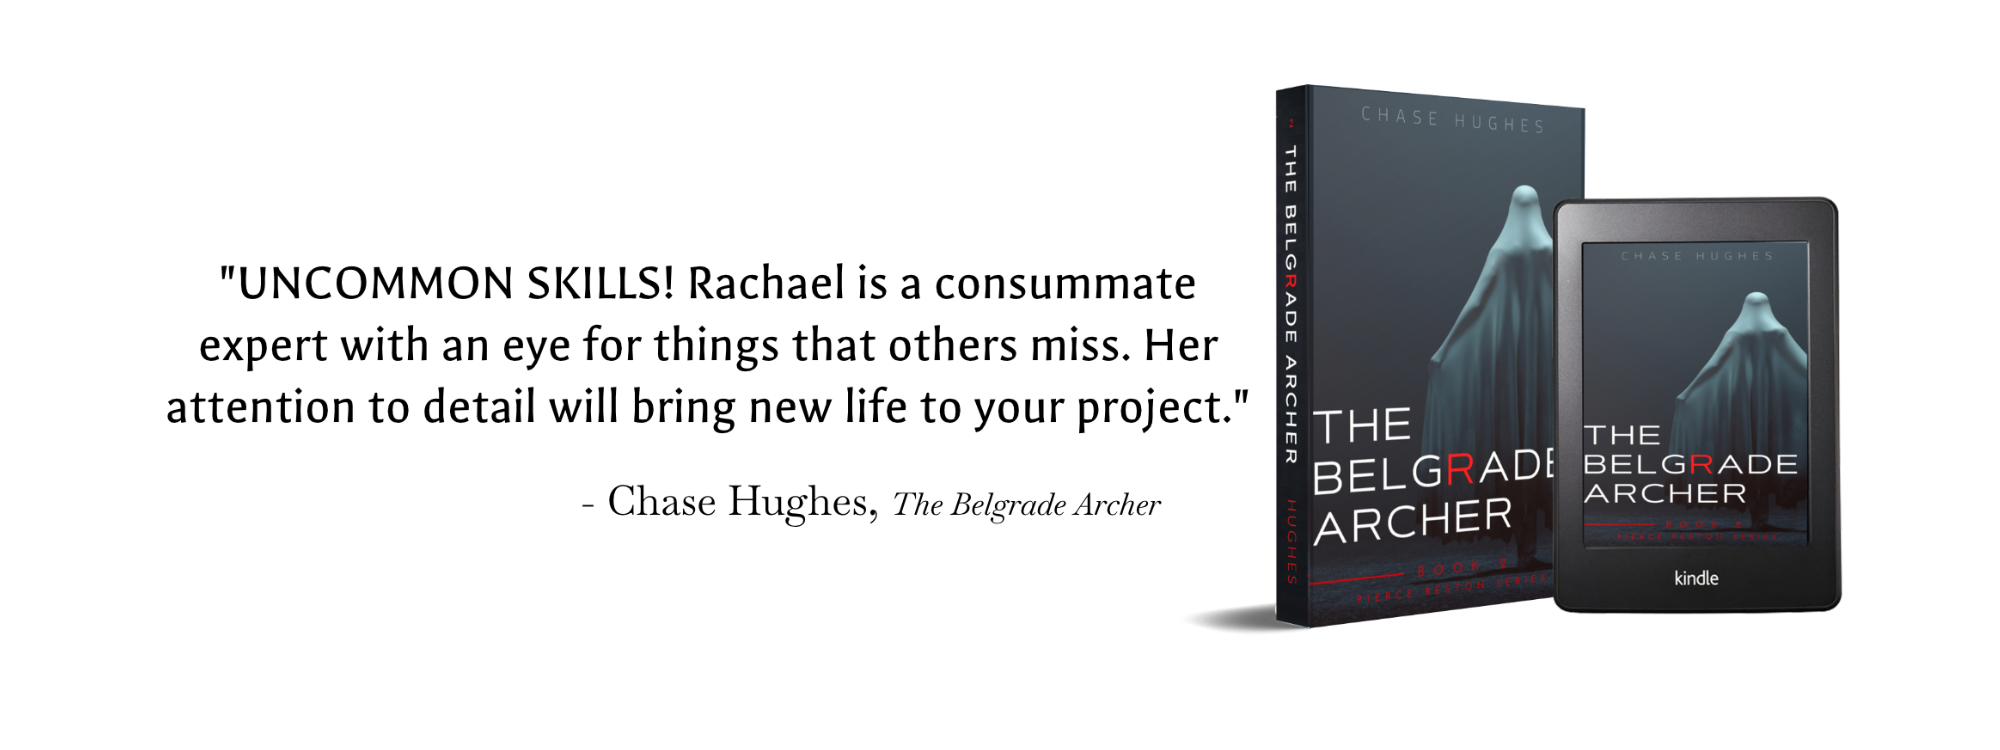 Book design Recommendation from Chase Hughes